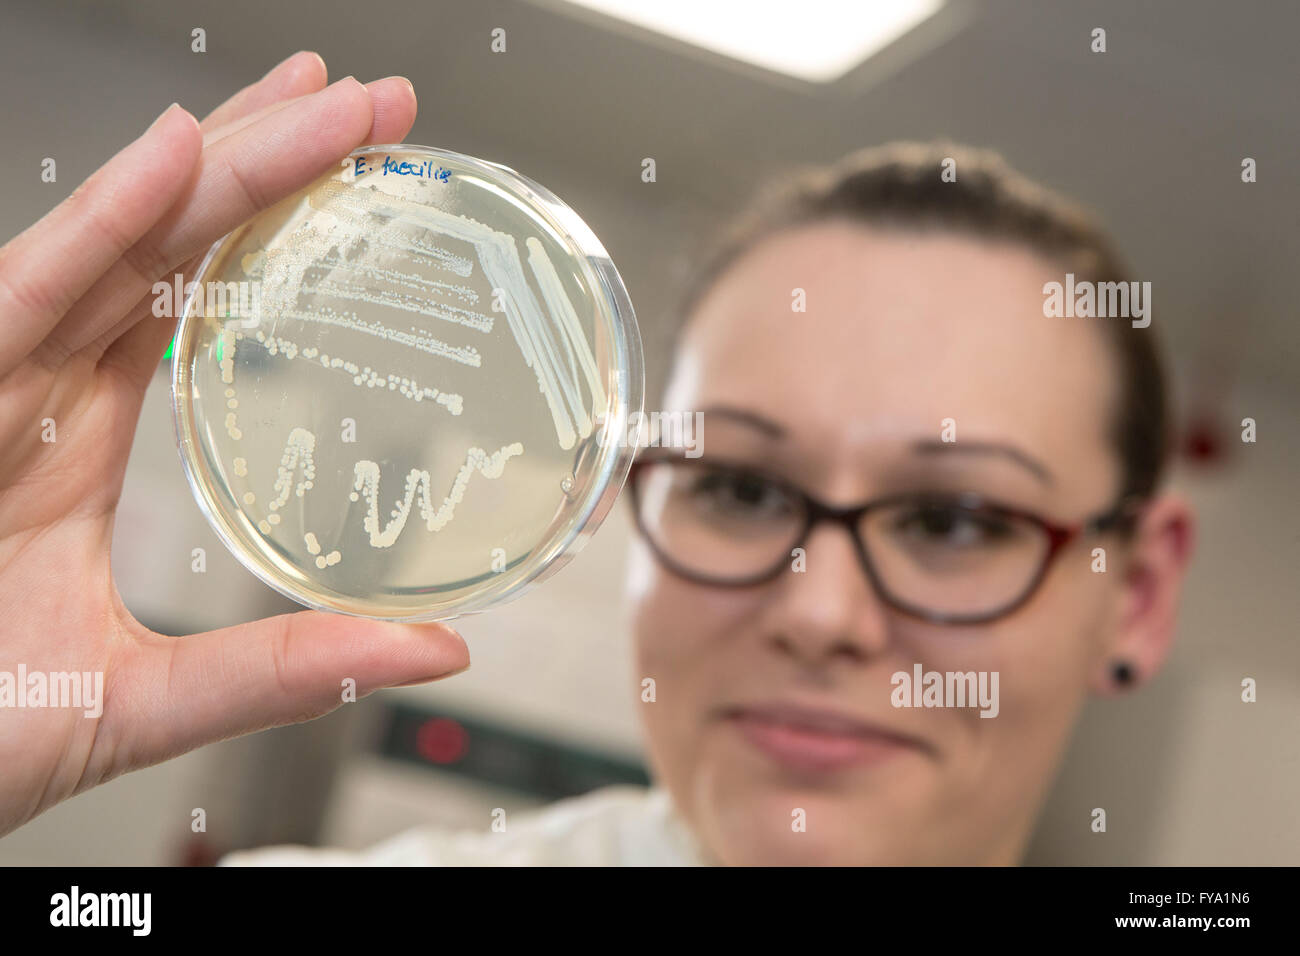 Microbiology samples  on petri dishes - Stock Image